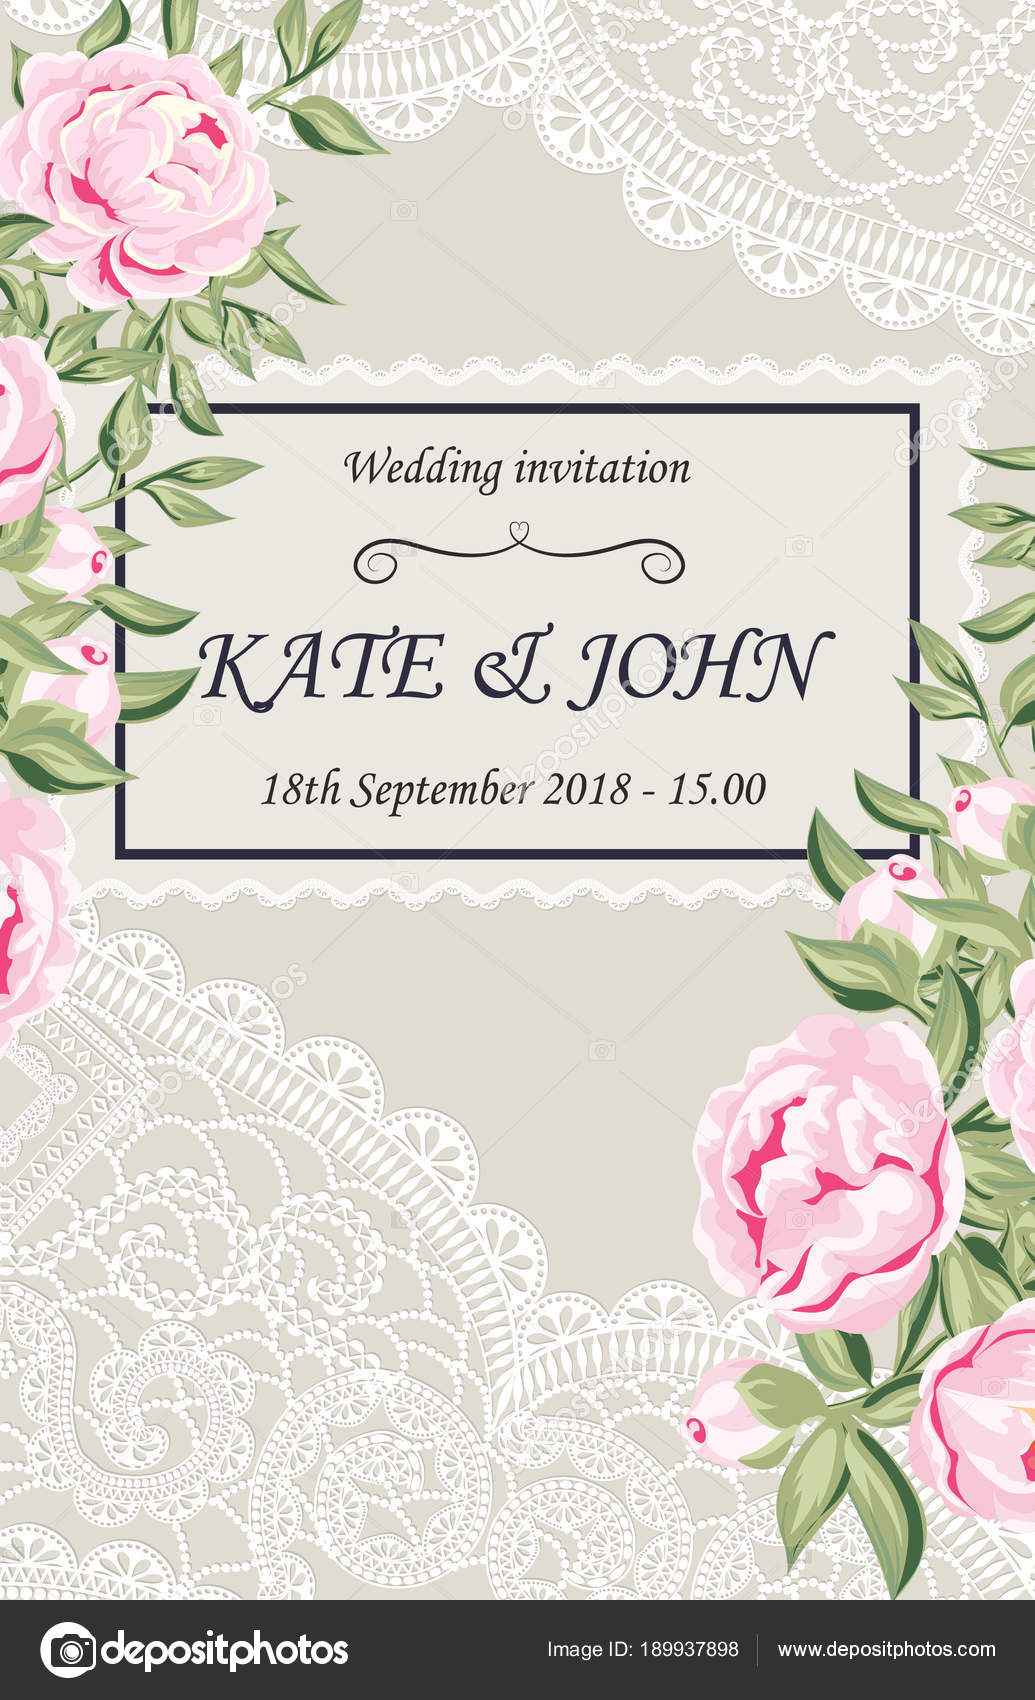 Wedding invitation with peonies and lace stock vector katyarusha wedding invitation with peonies and lace vector illustratio vector by katyarusha stopboris Images